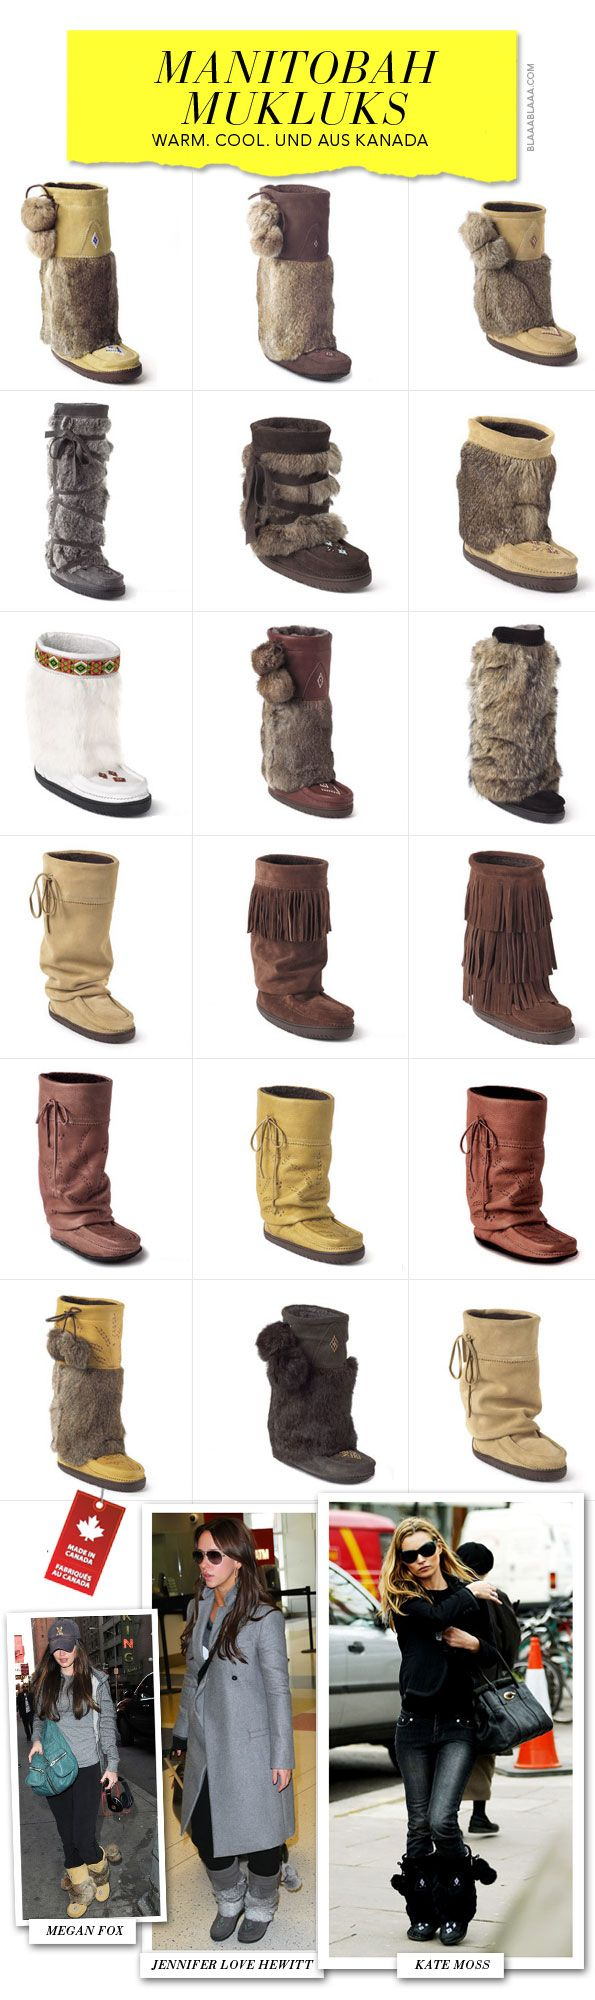 Manitobah Mukluks as worn by Jen Love Hewitt, Kate Moss and Megan Fox. Available at www.styleNV.ca